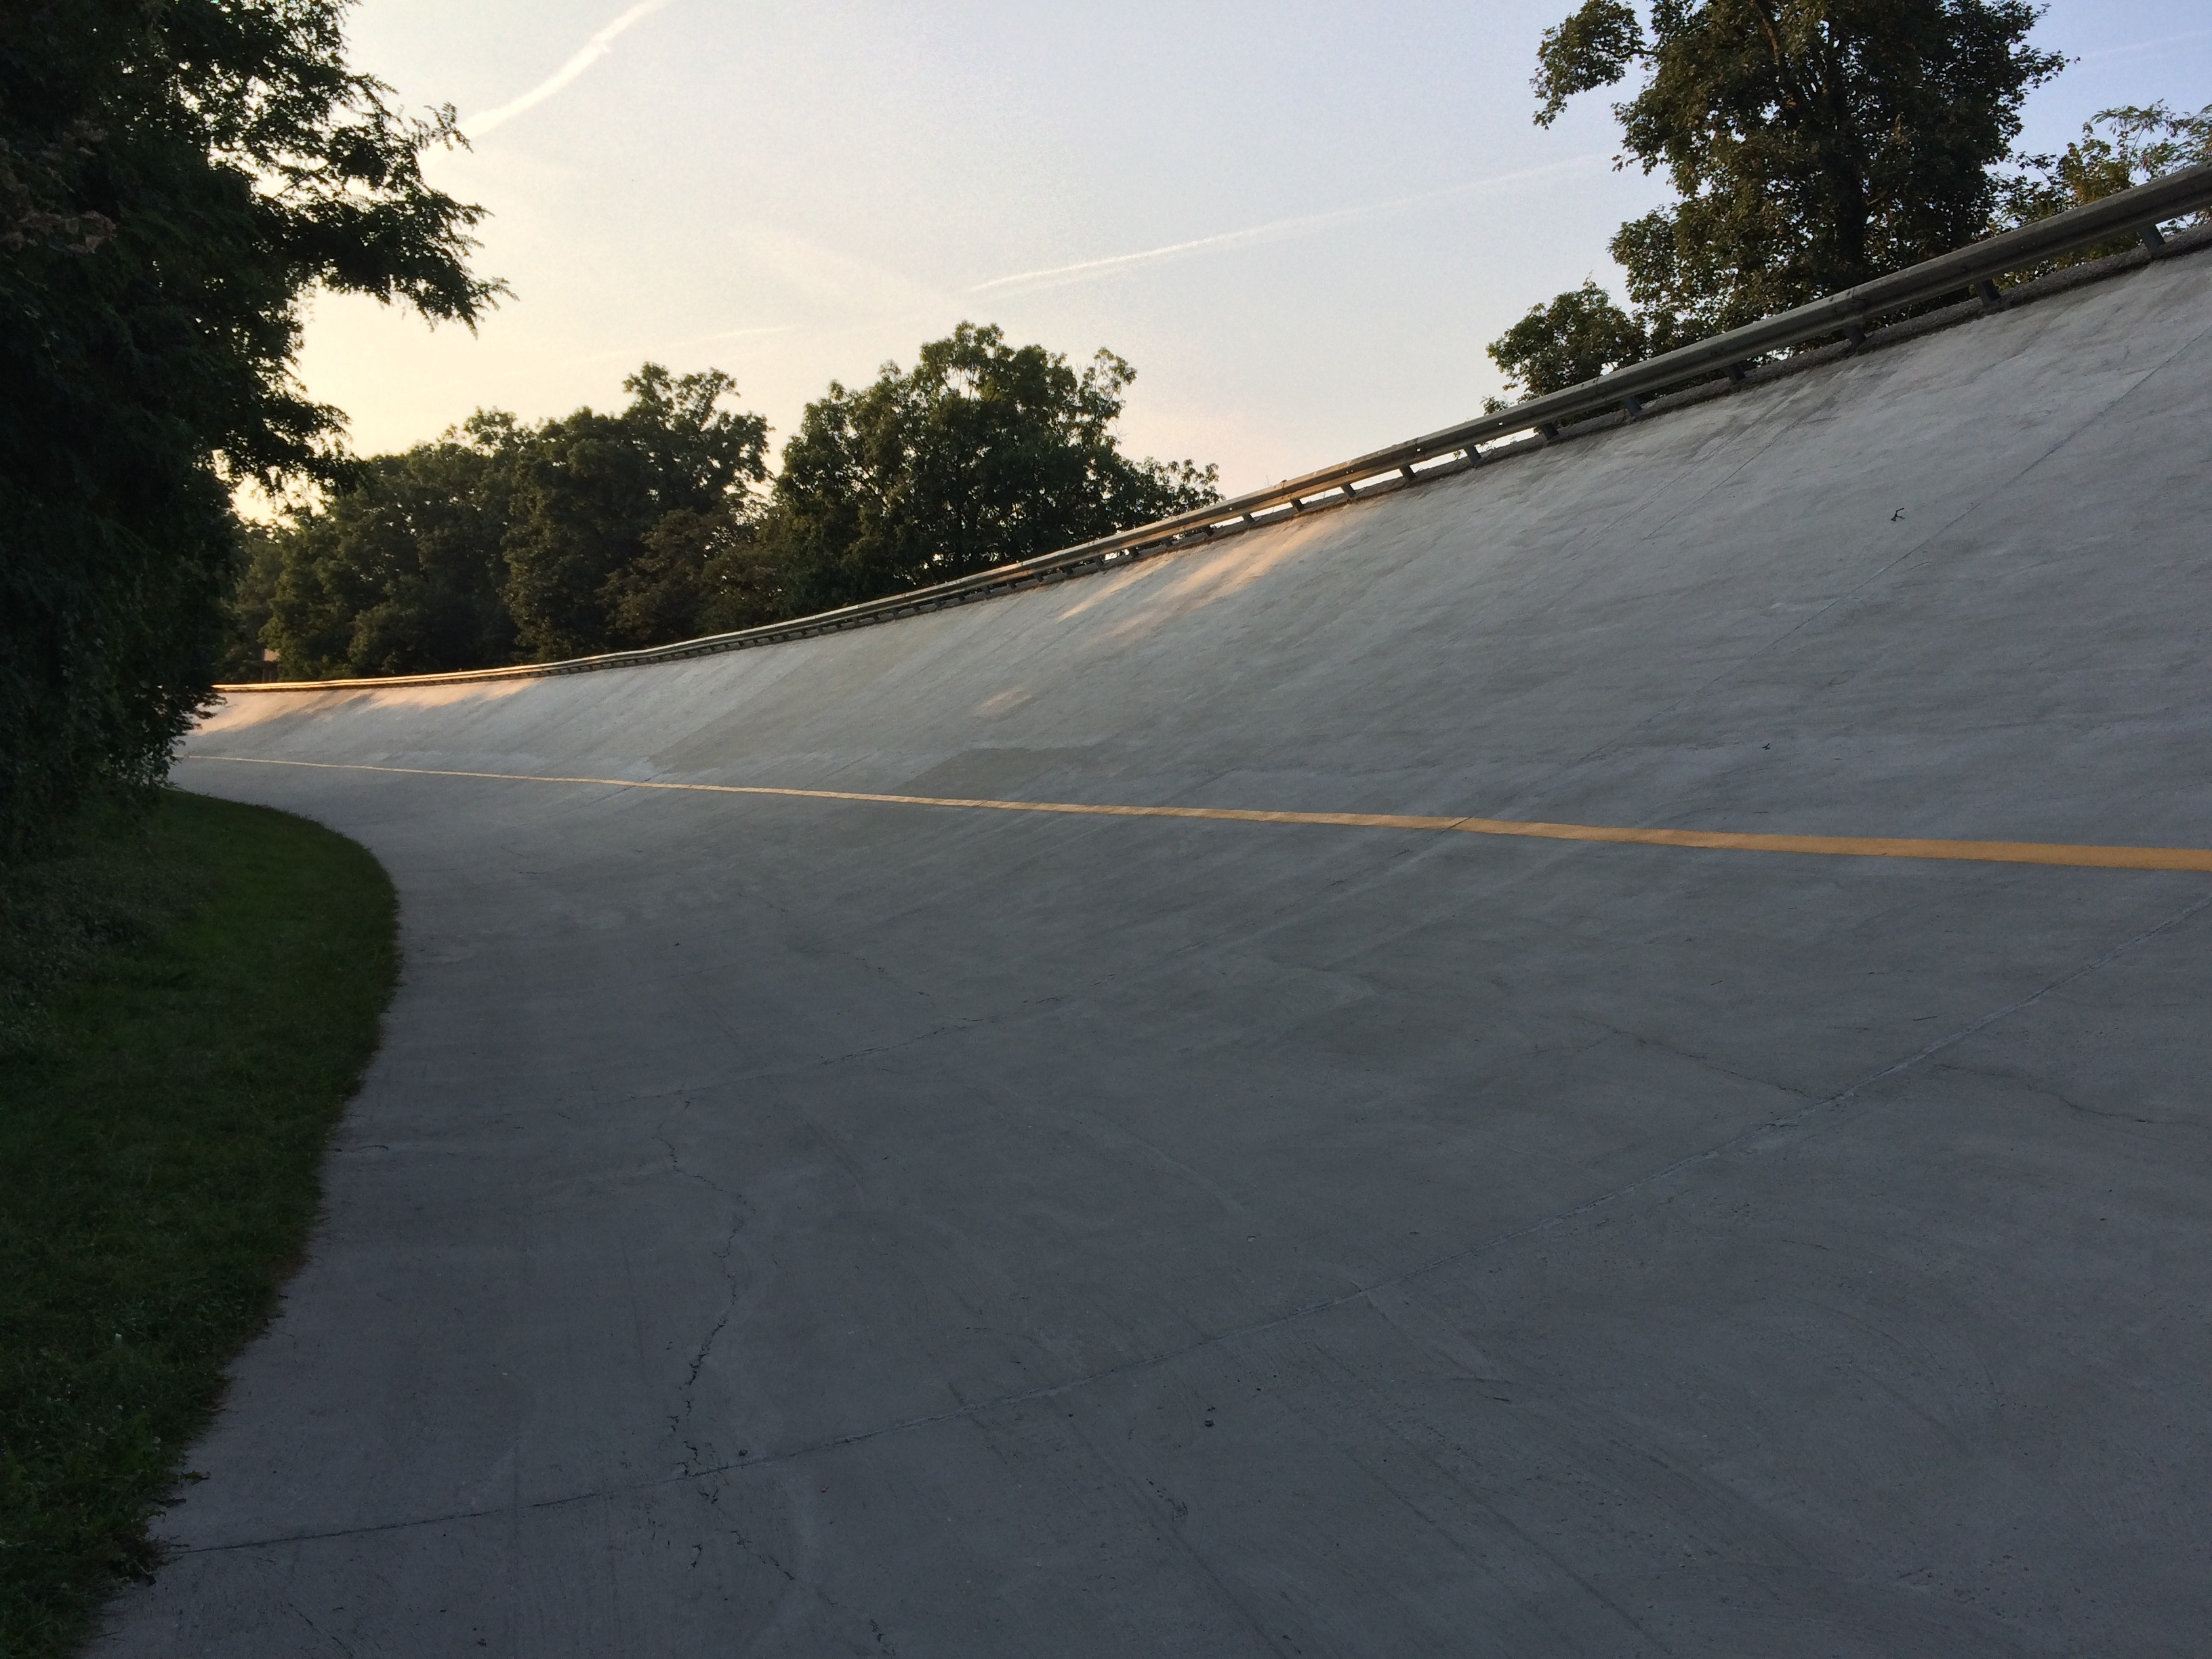 Monza looking for funding to bring back old circuit banking to life